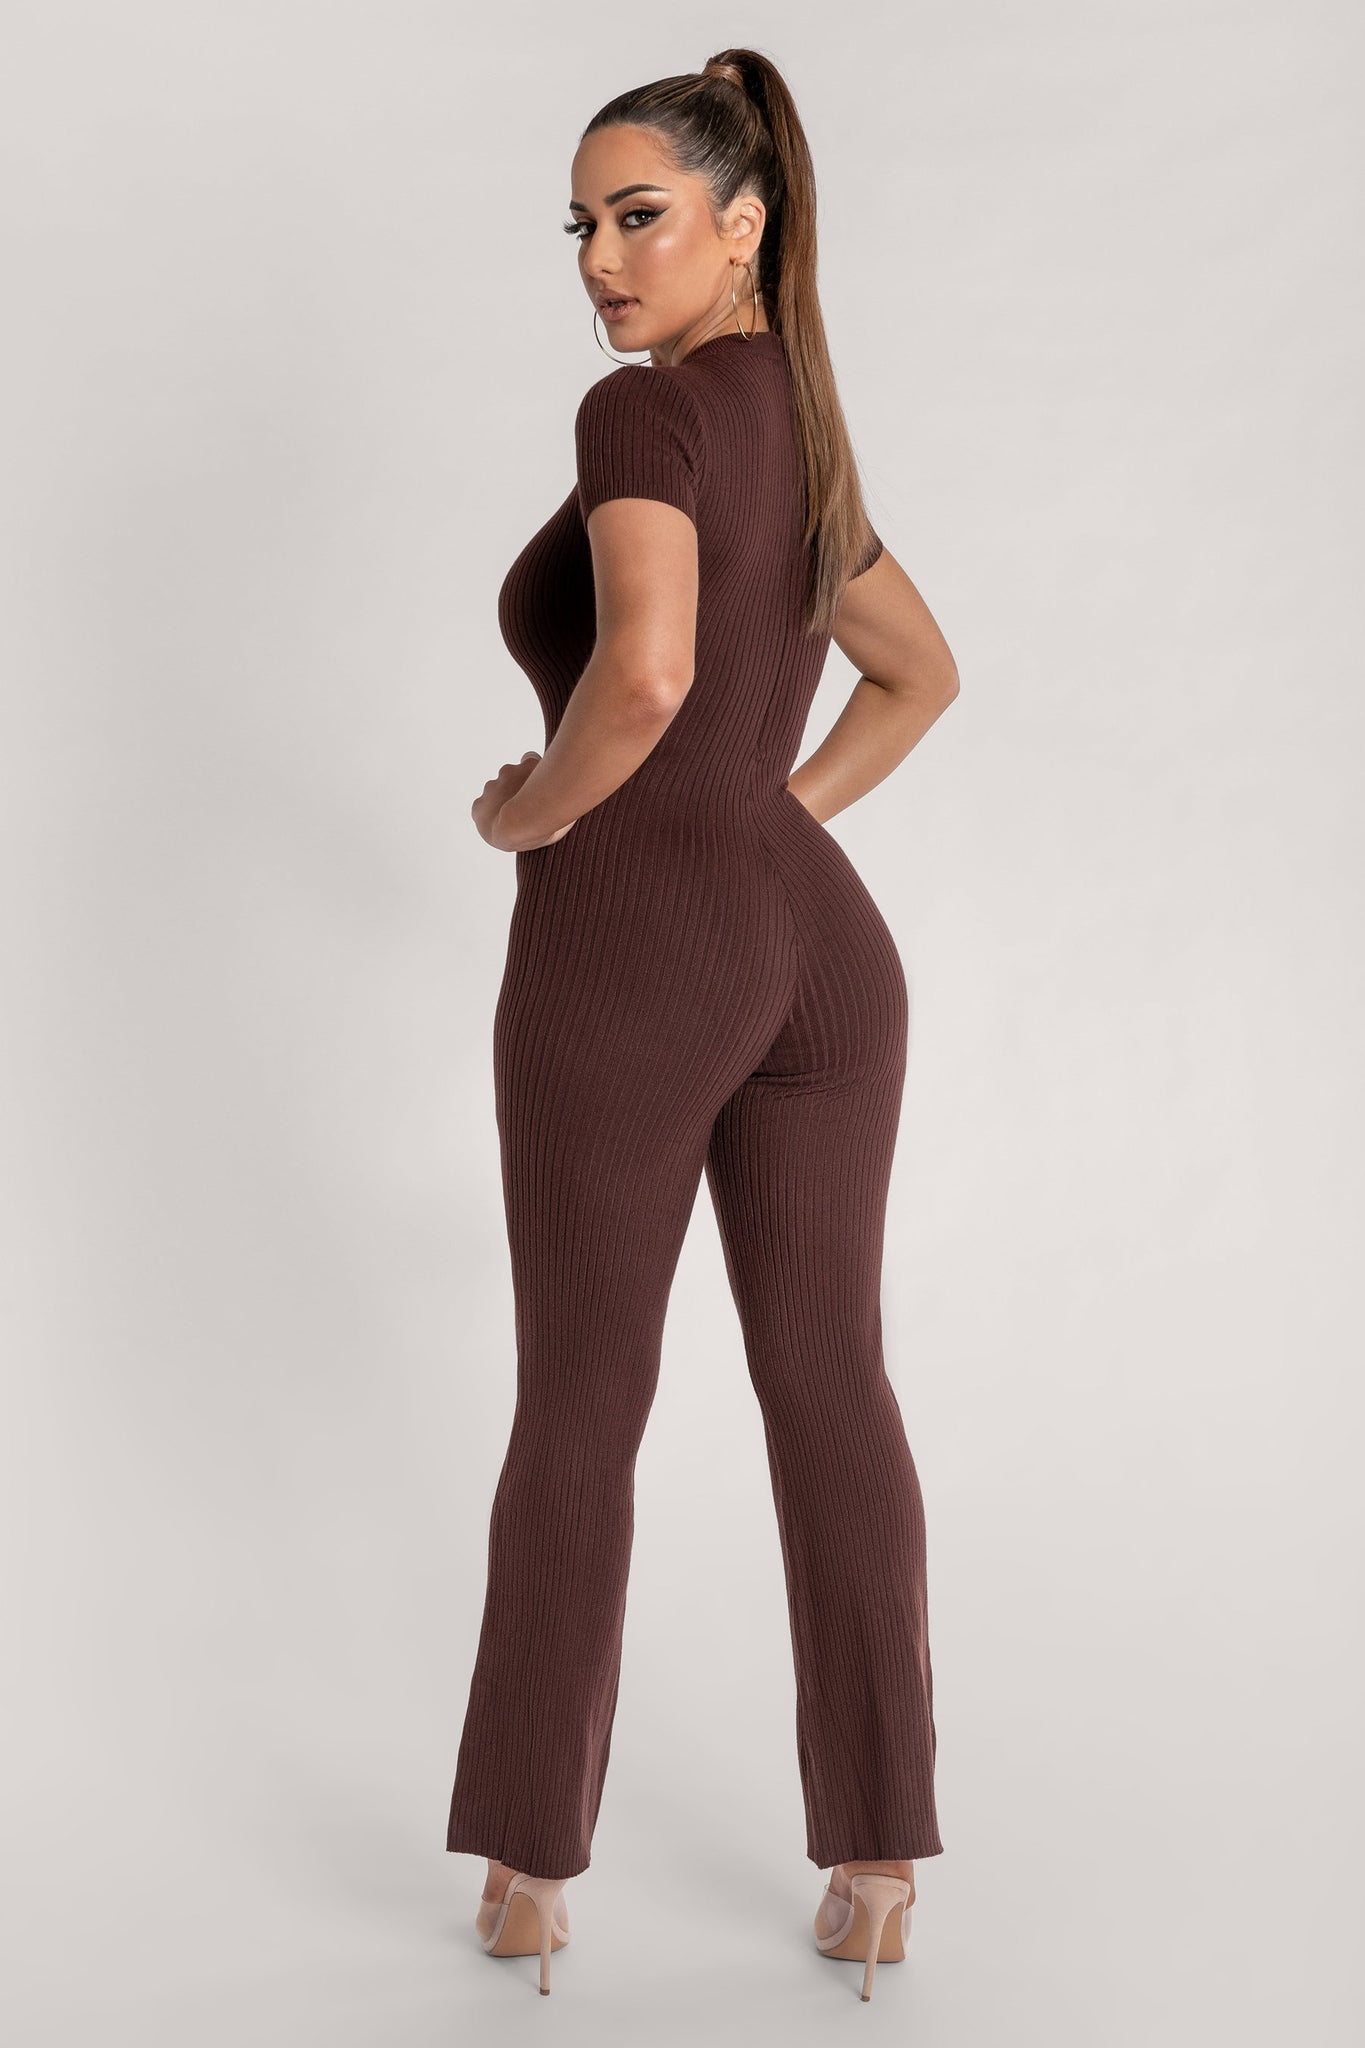 Natalee Ribbed Cap Sleeve Jumpsuit - Chocolate - MESHKI